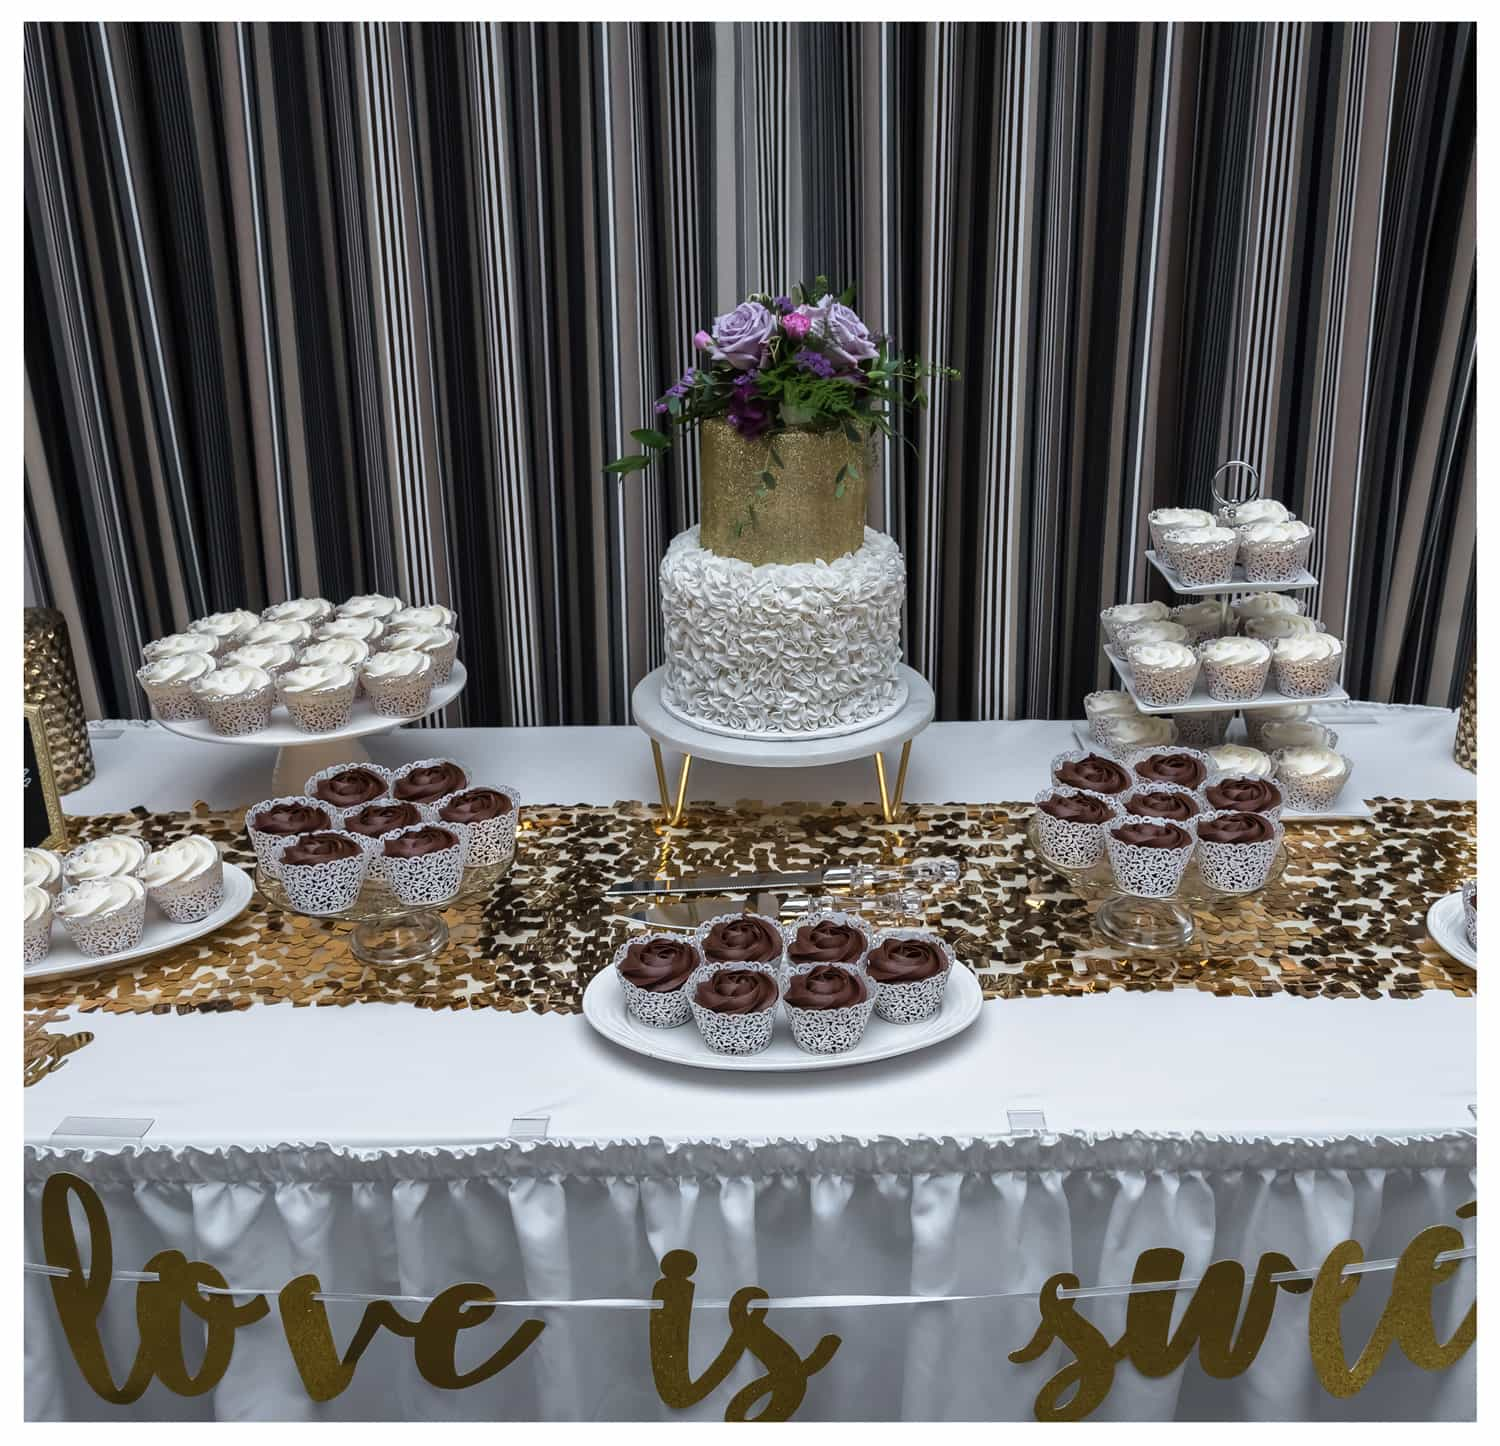 a two tier wedding cake with floral wedding cake topper surrounded by wedding cupcakes on three tier cupcake stands